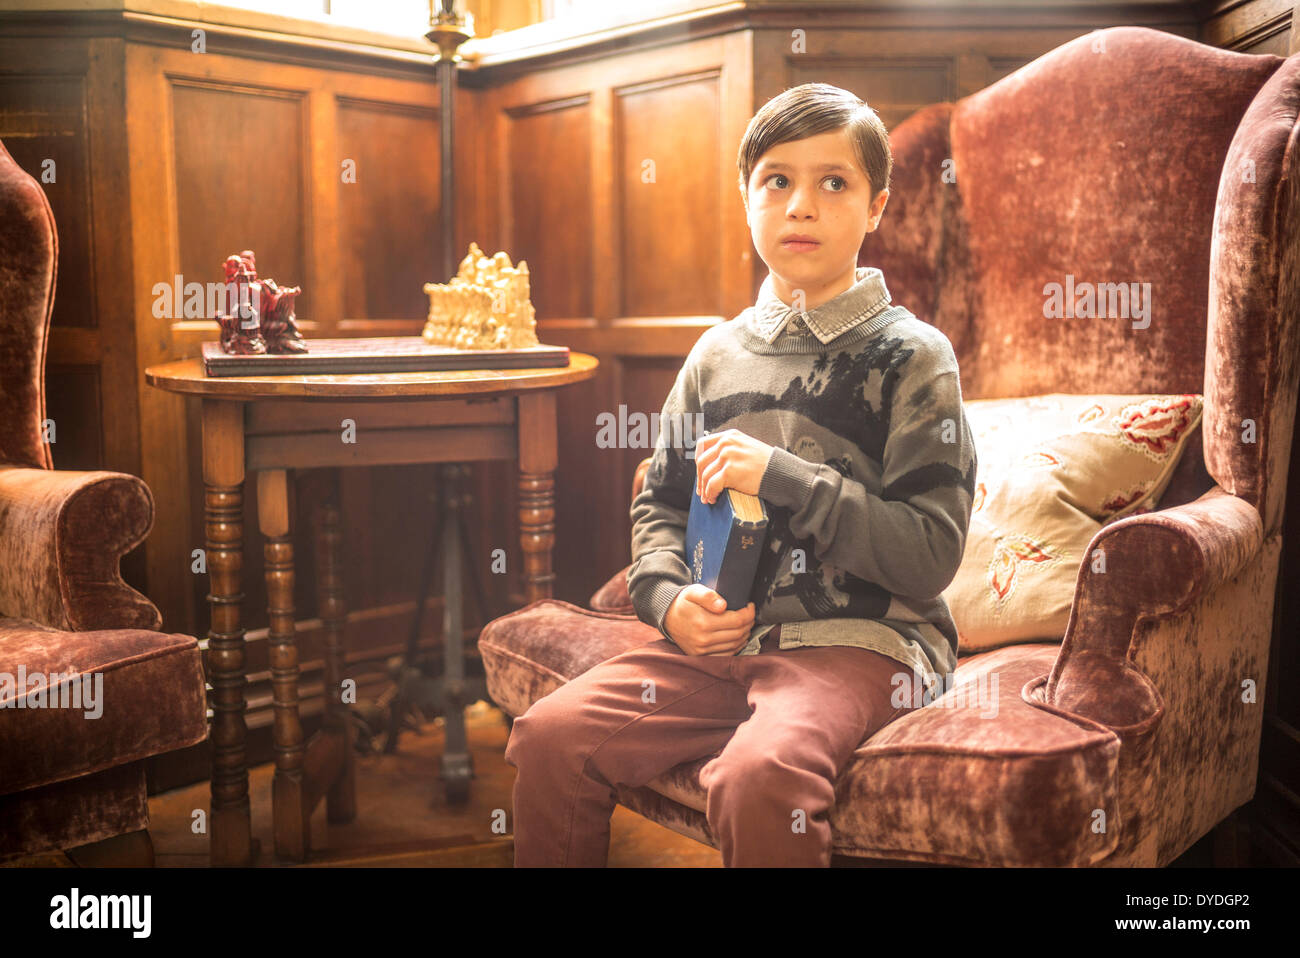 A young boy sitting with a book in Thornbury Castle. - Stock Image